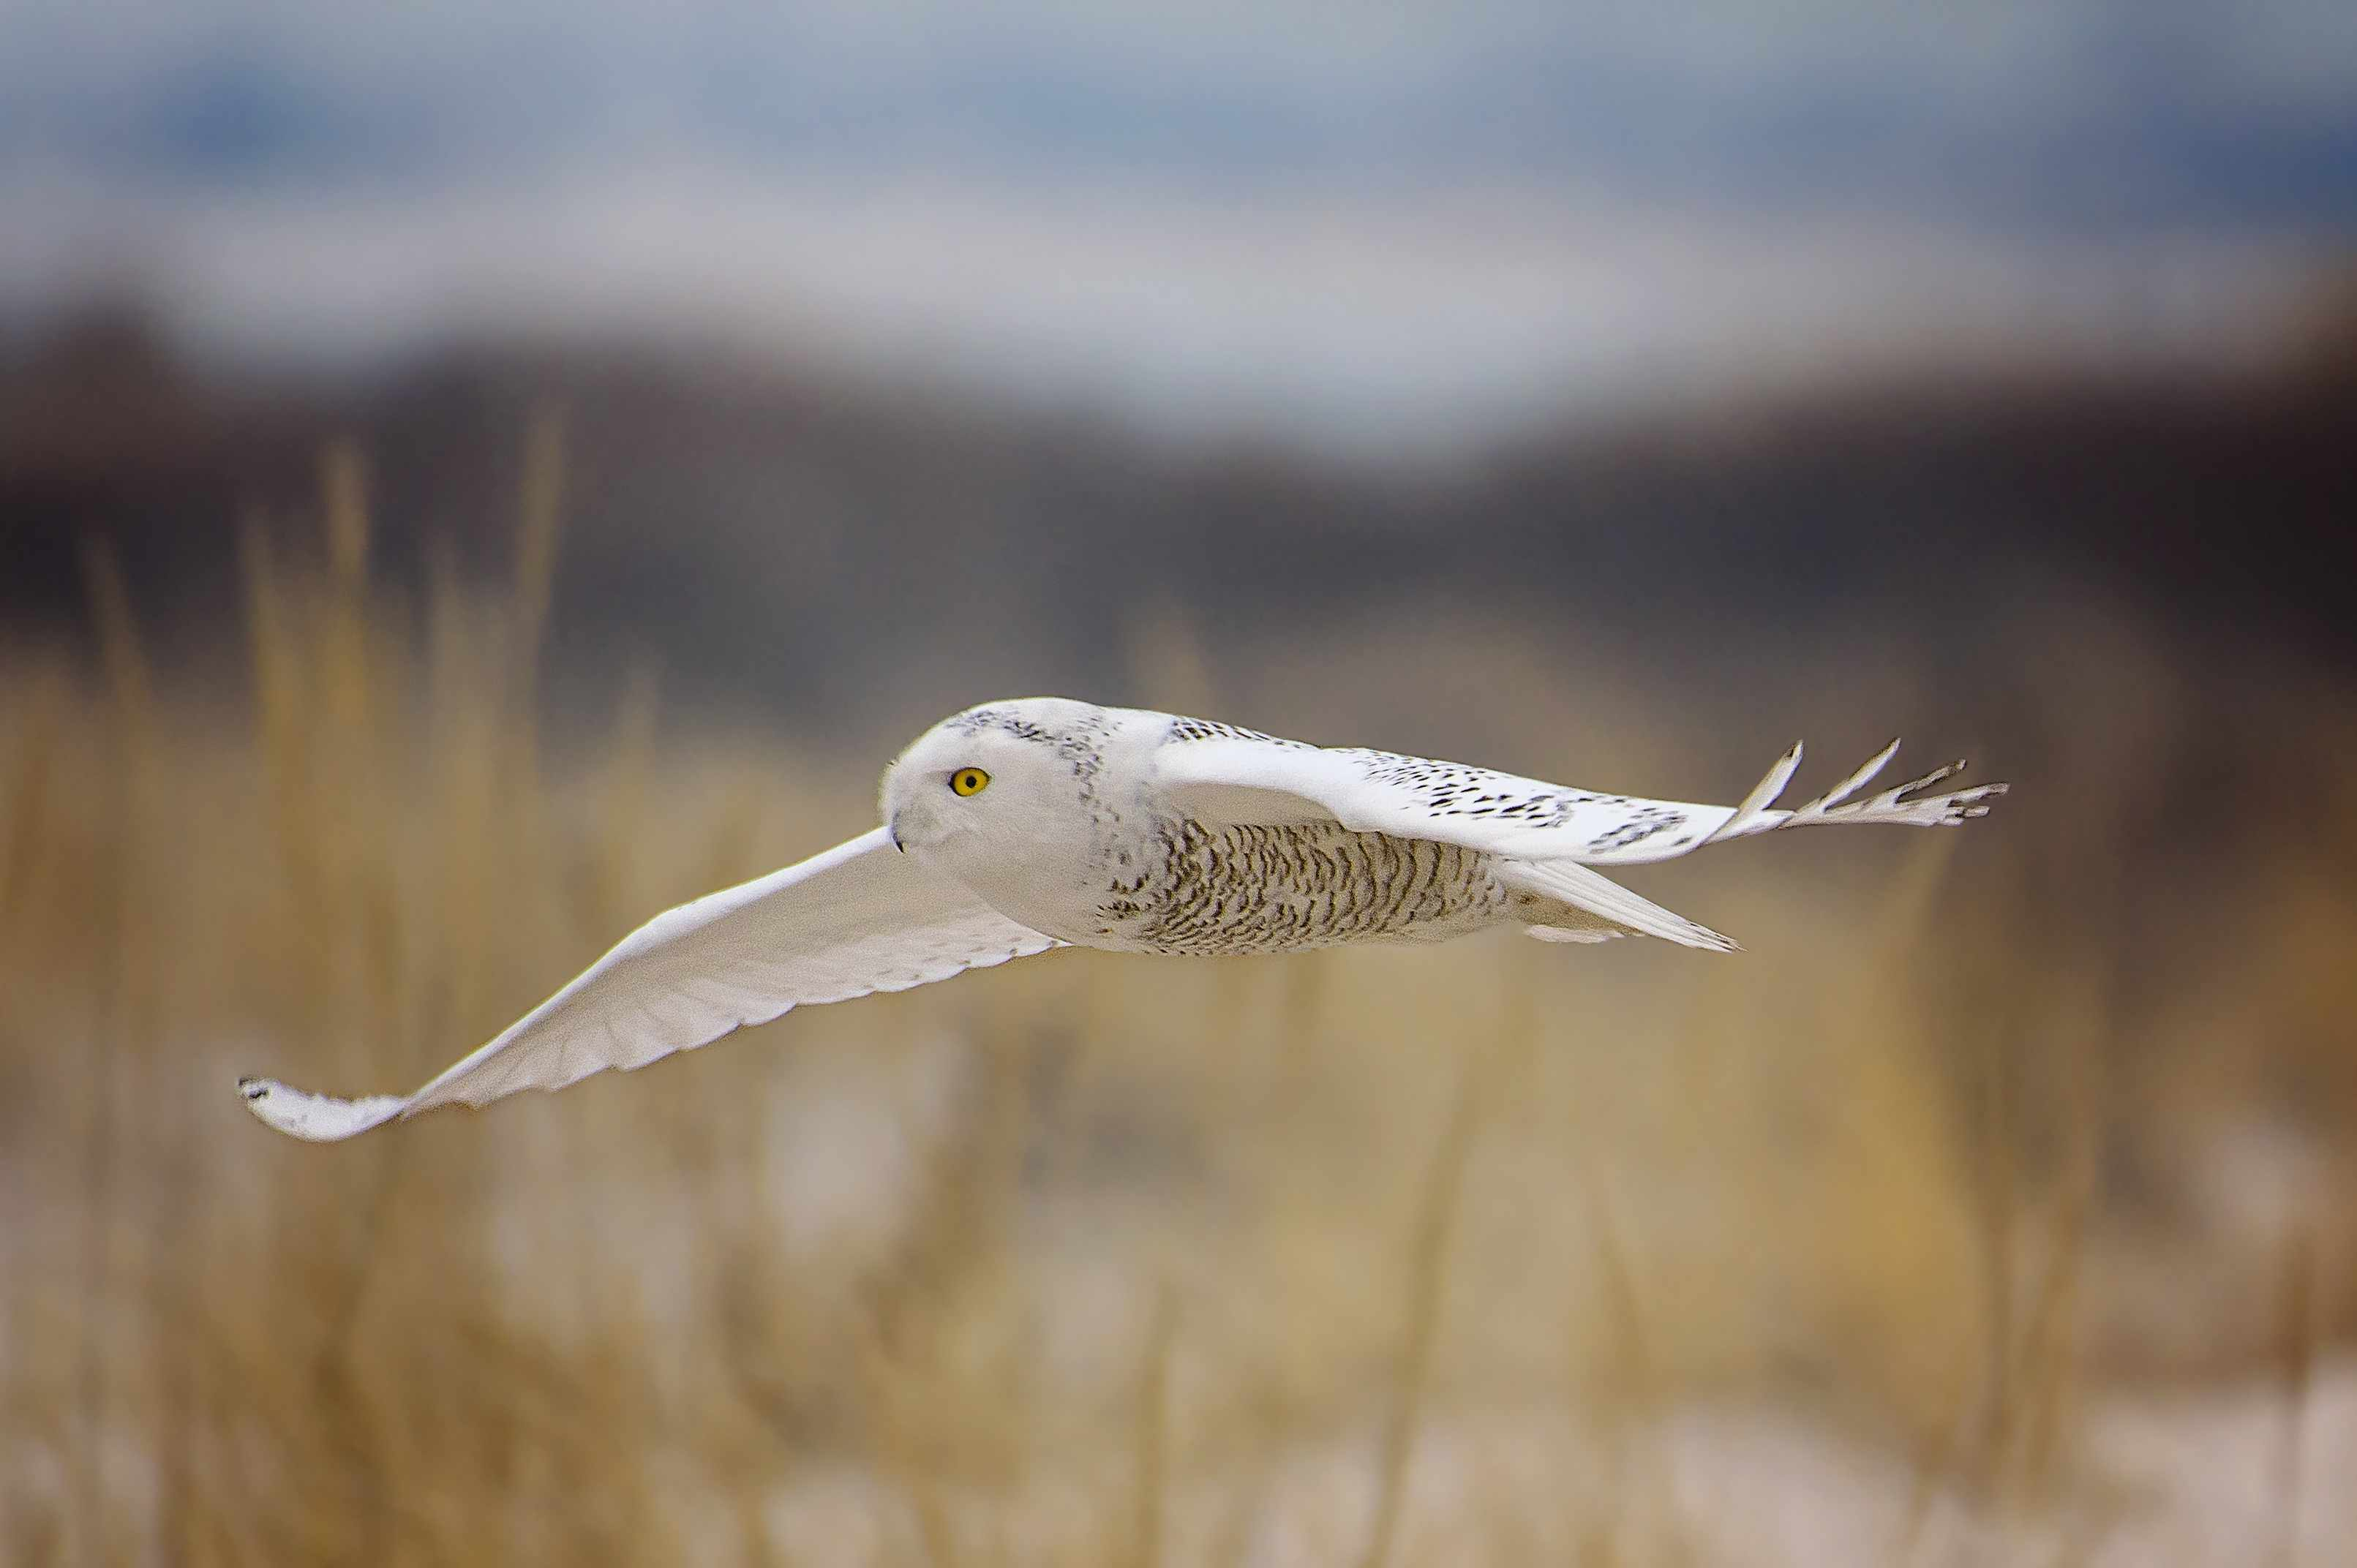 snow owl with wings spread wide gliding over tall grass